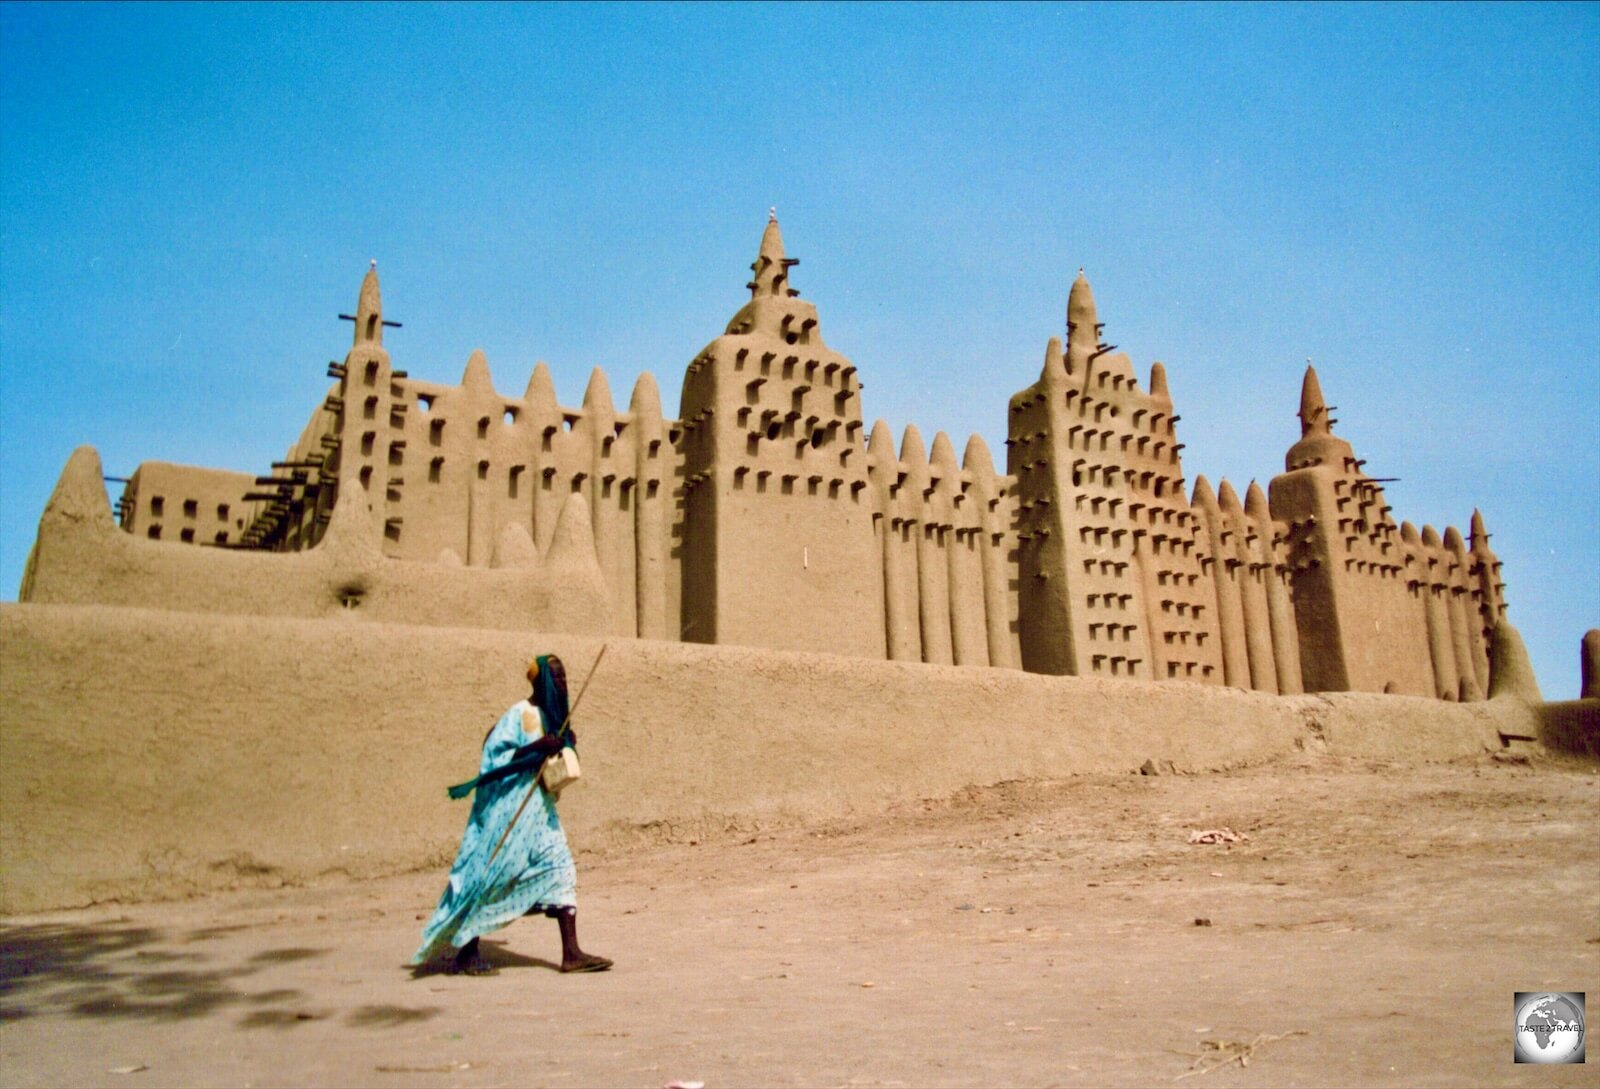 Mosque of Djenne